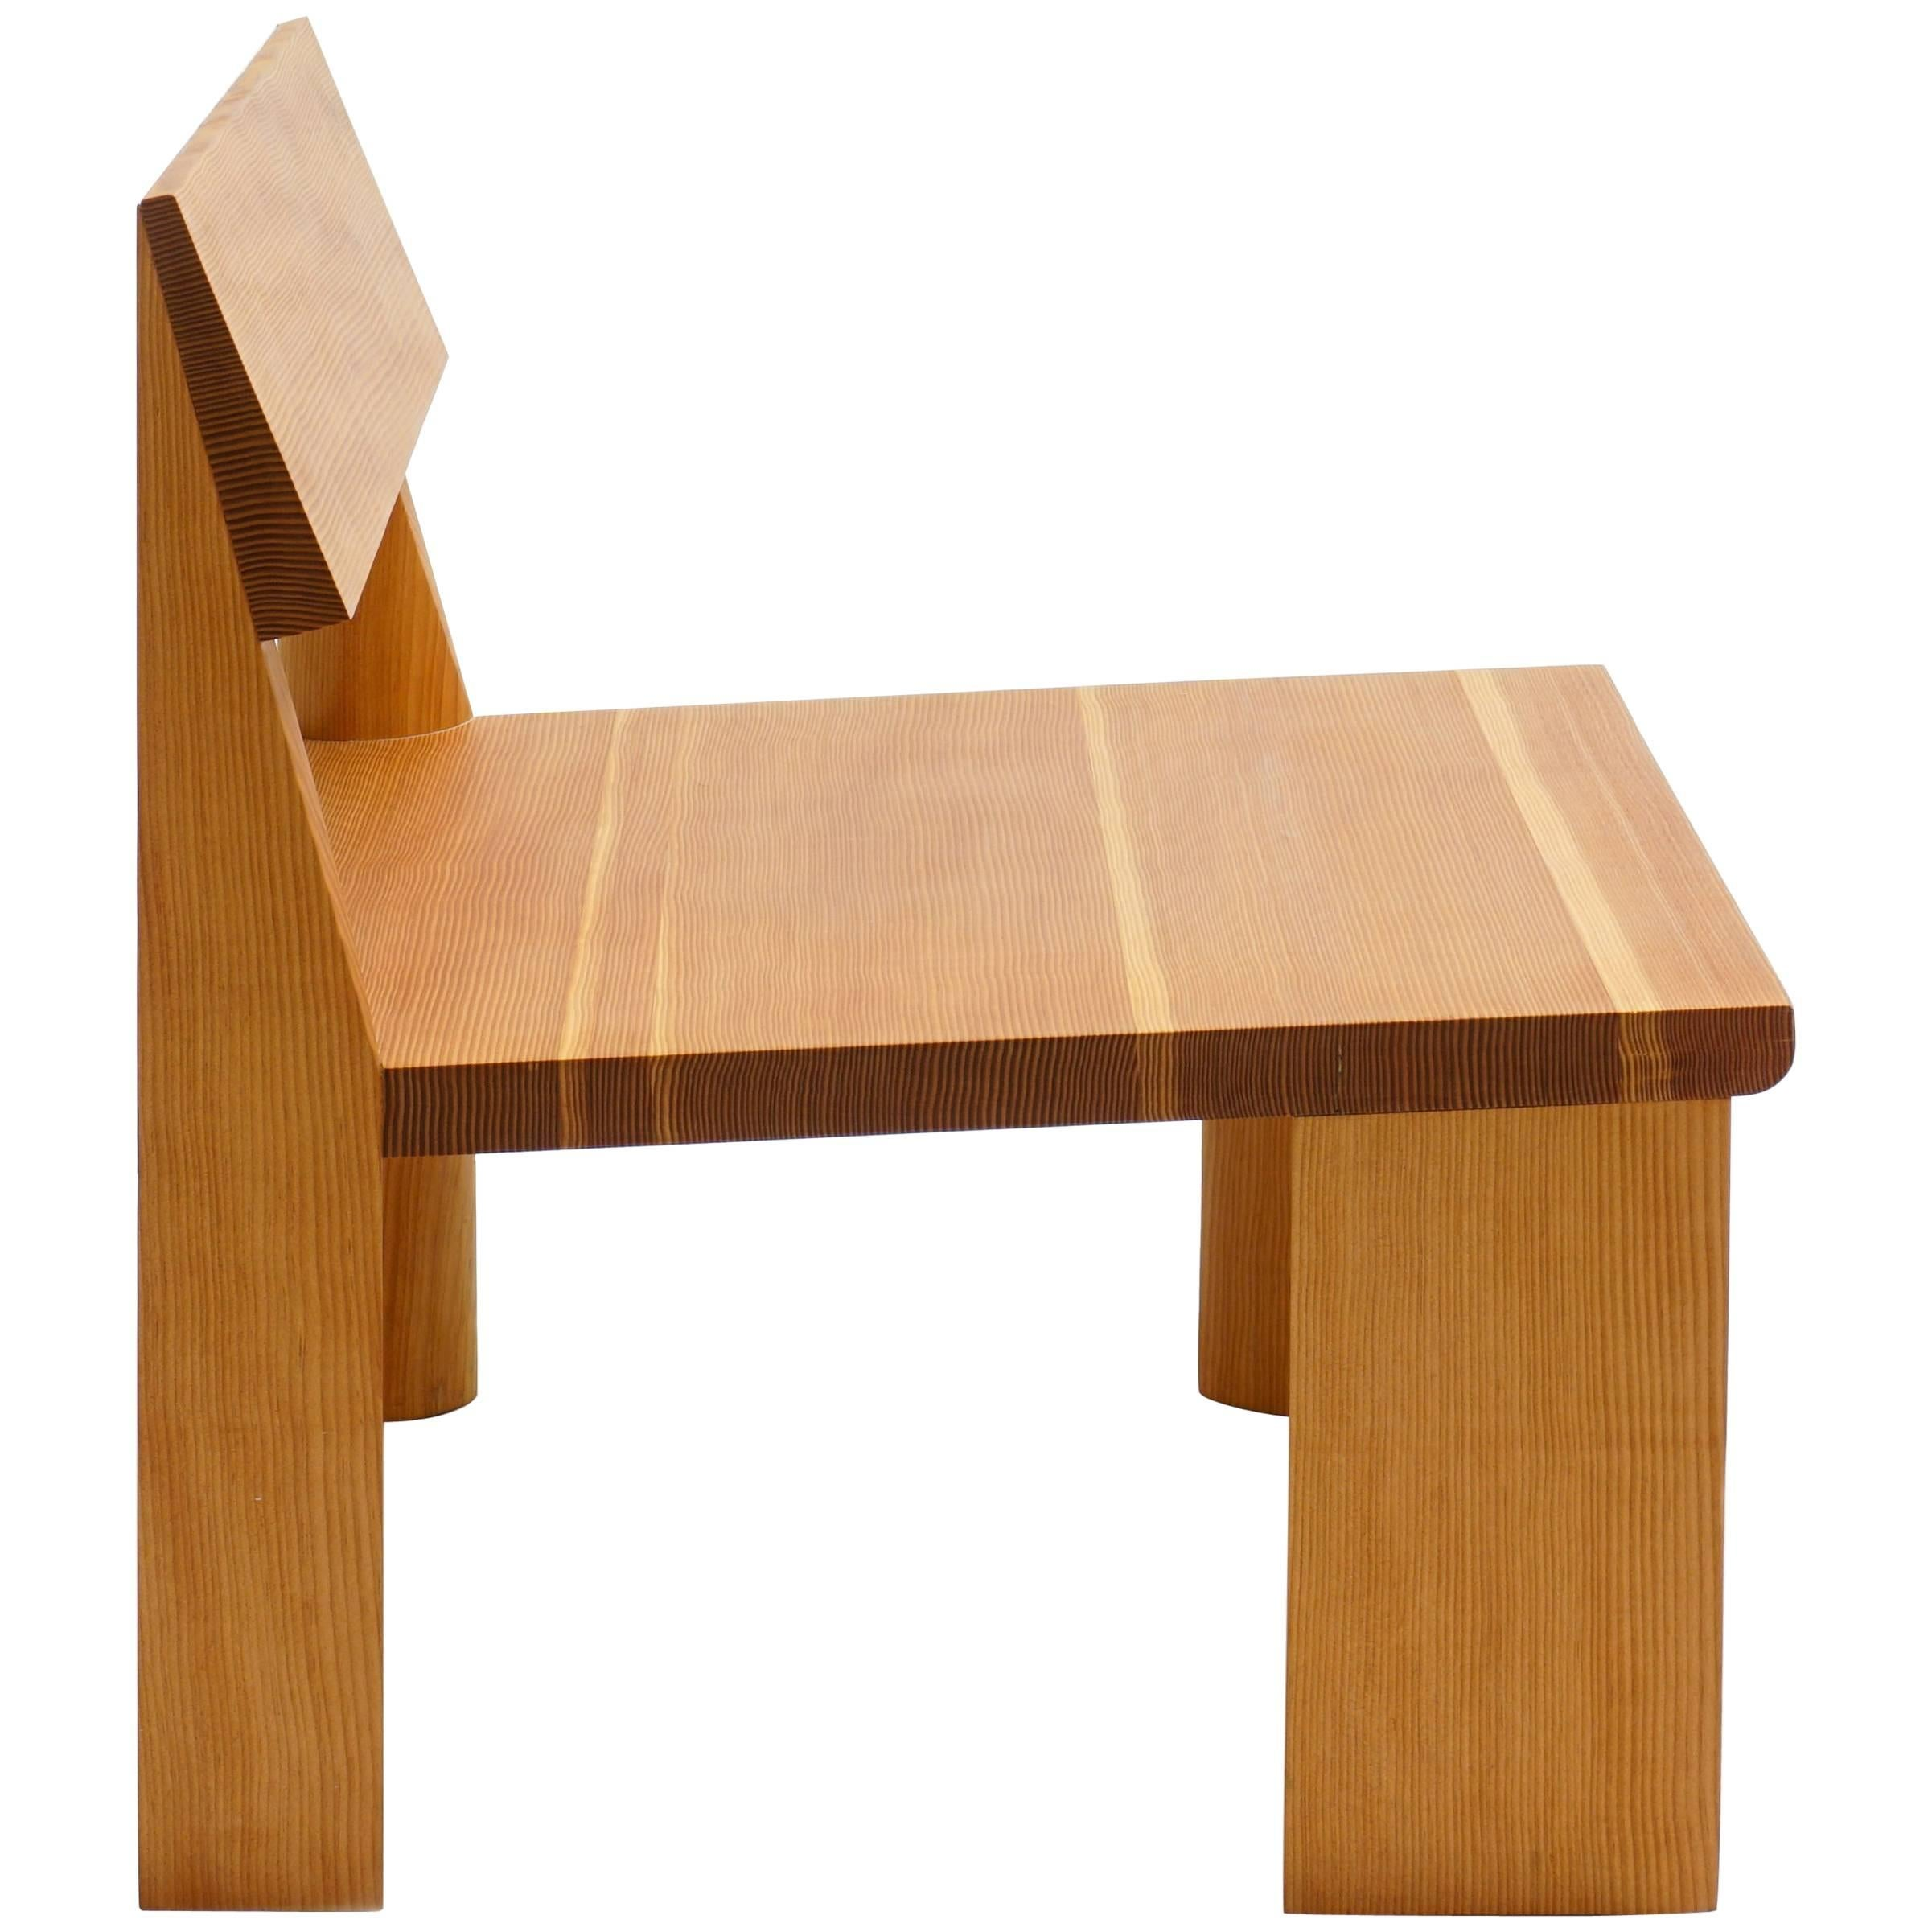 Contemporary Low Wooden Chair In Douglas Fir, LWC By Jonathan Muecke 1